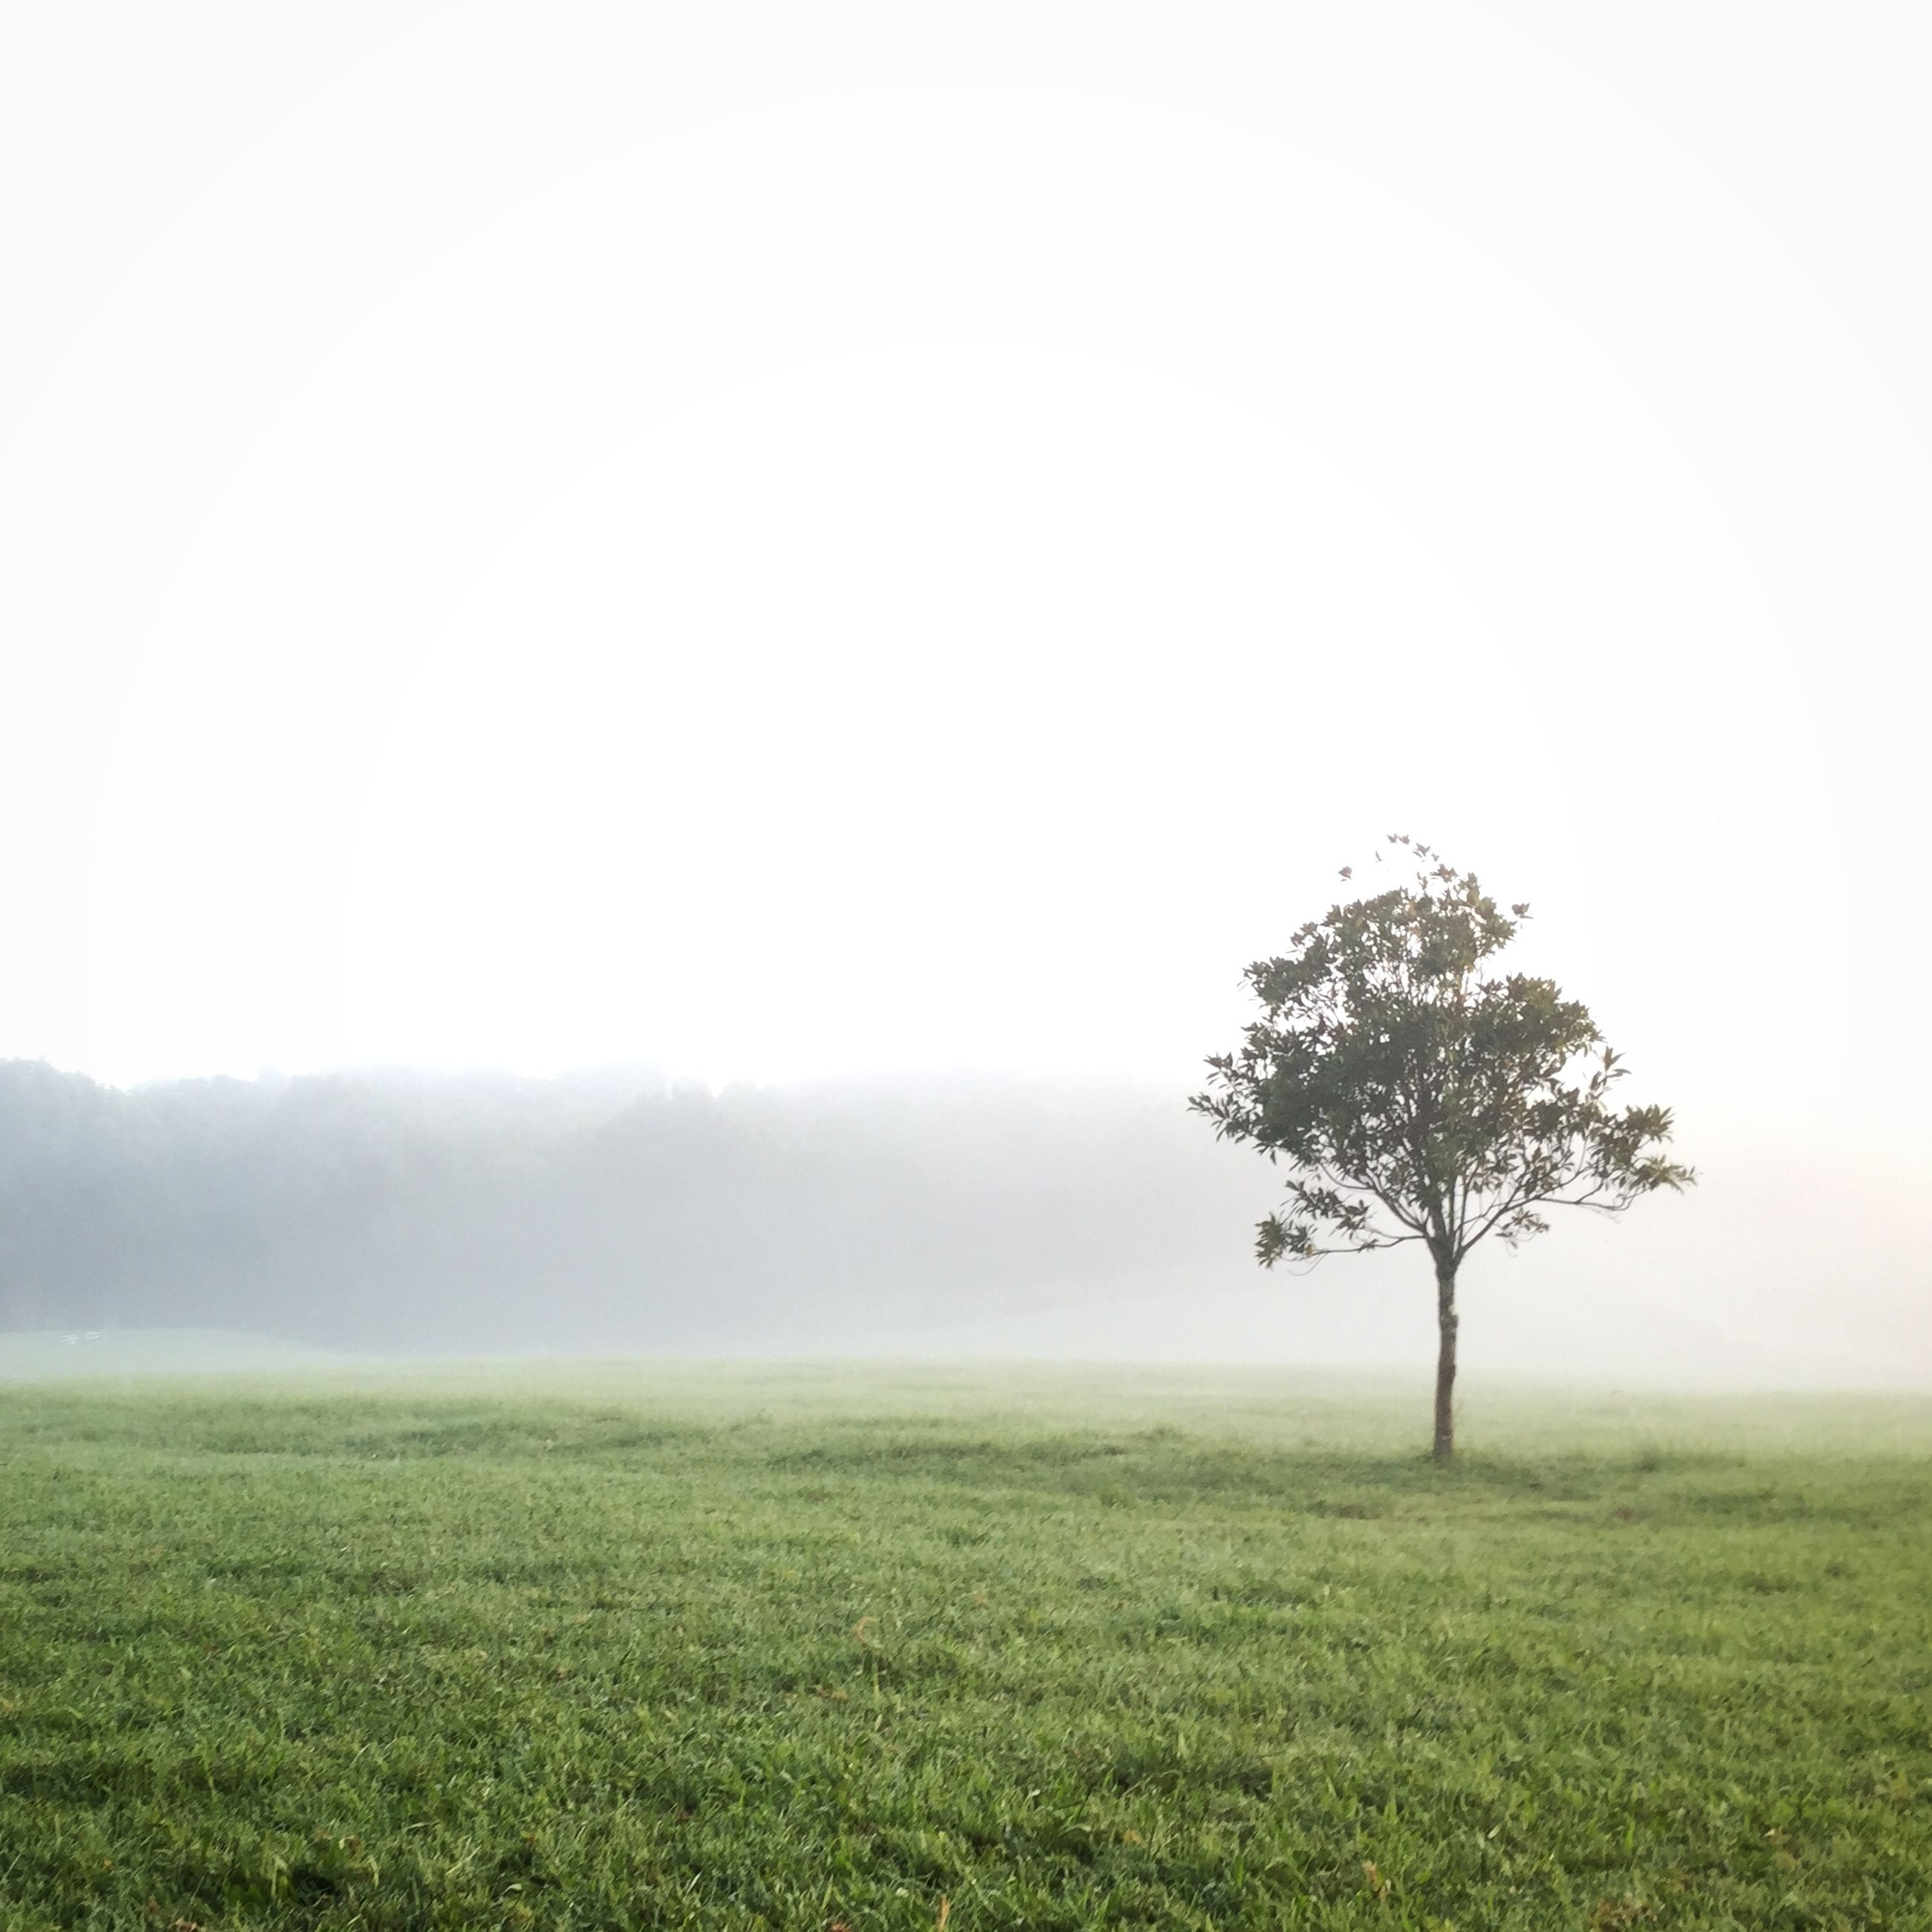 fog, tranquil scene, tranquility, foggy, field, landscape, grass, beauty in nature, scenics, nature, tree, copy space, growth, weather, green color, grassy, sky, non-urban scene, idyllic